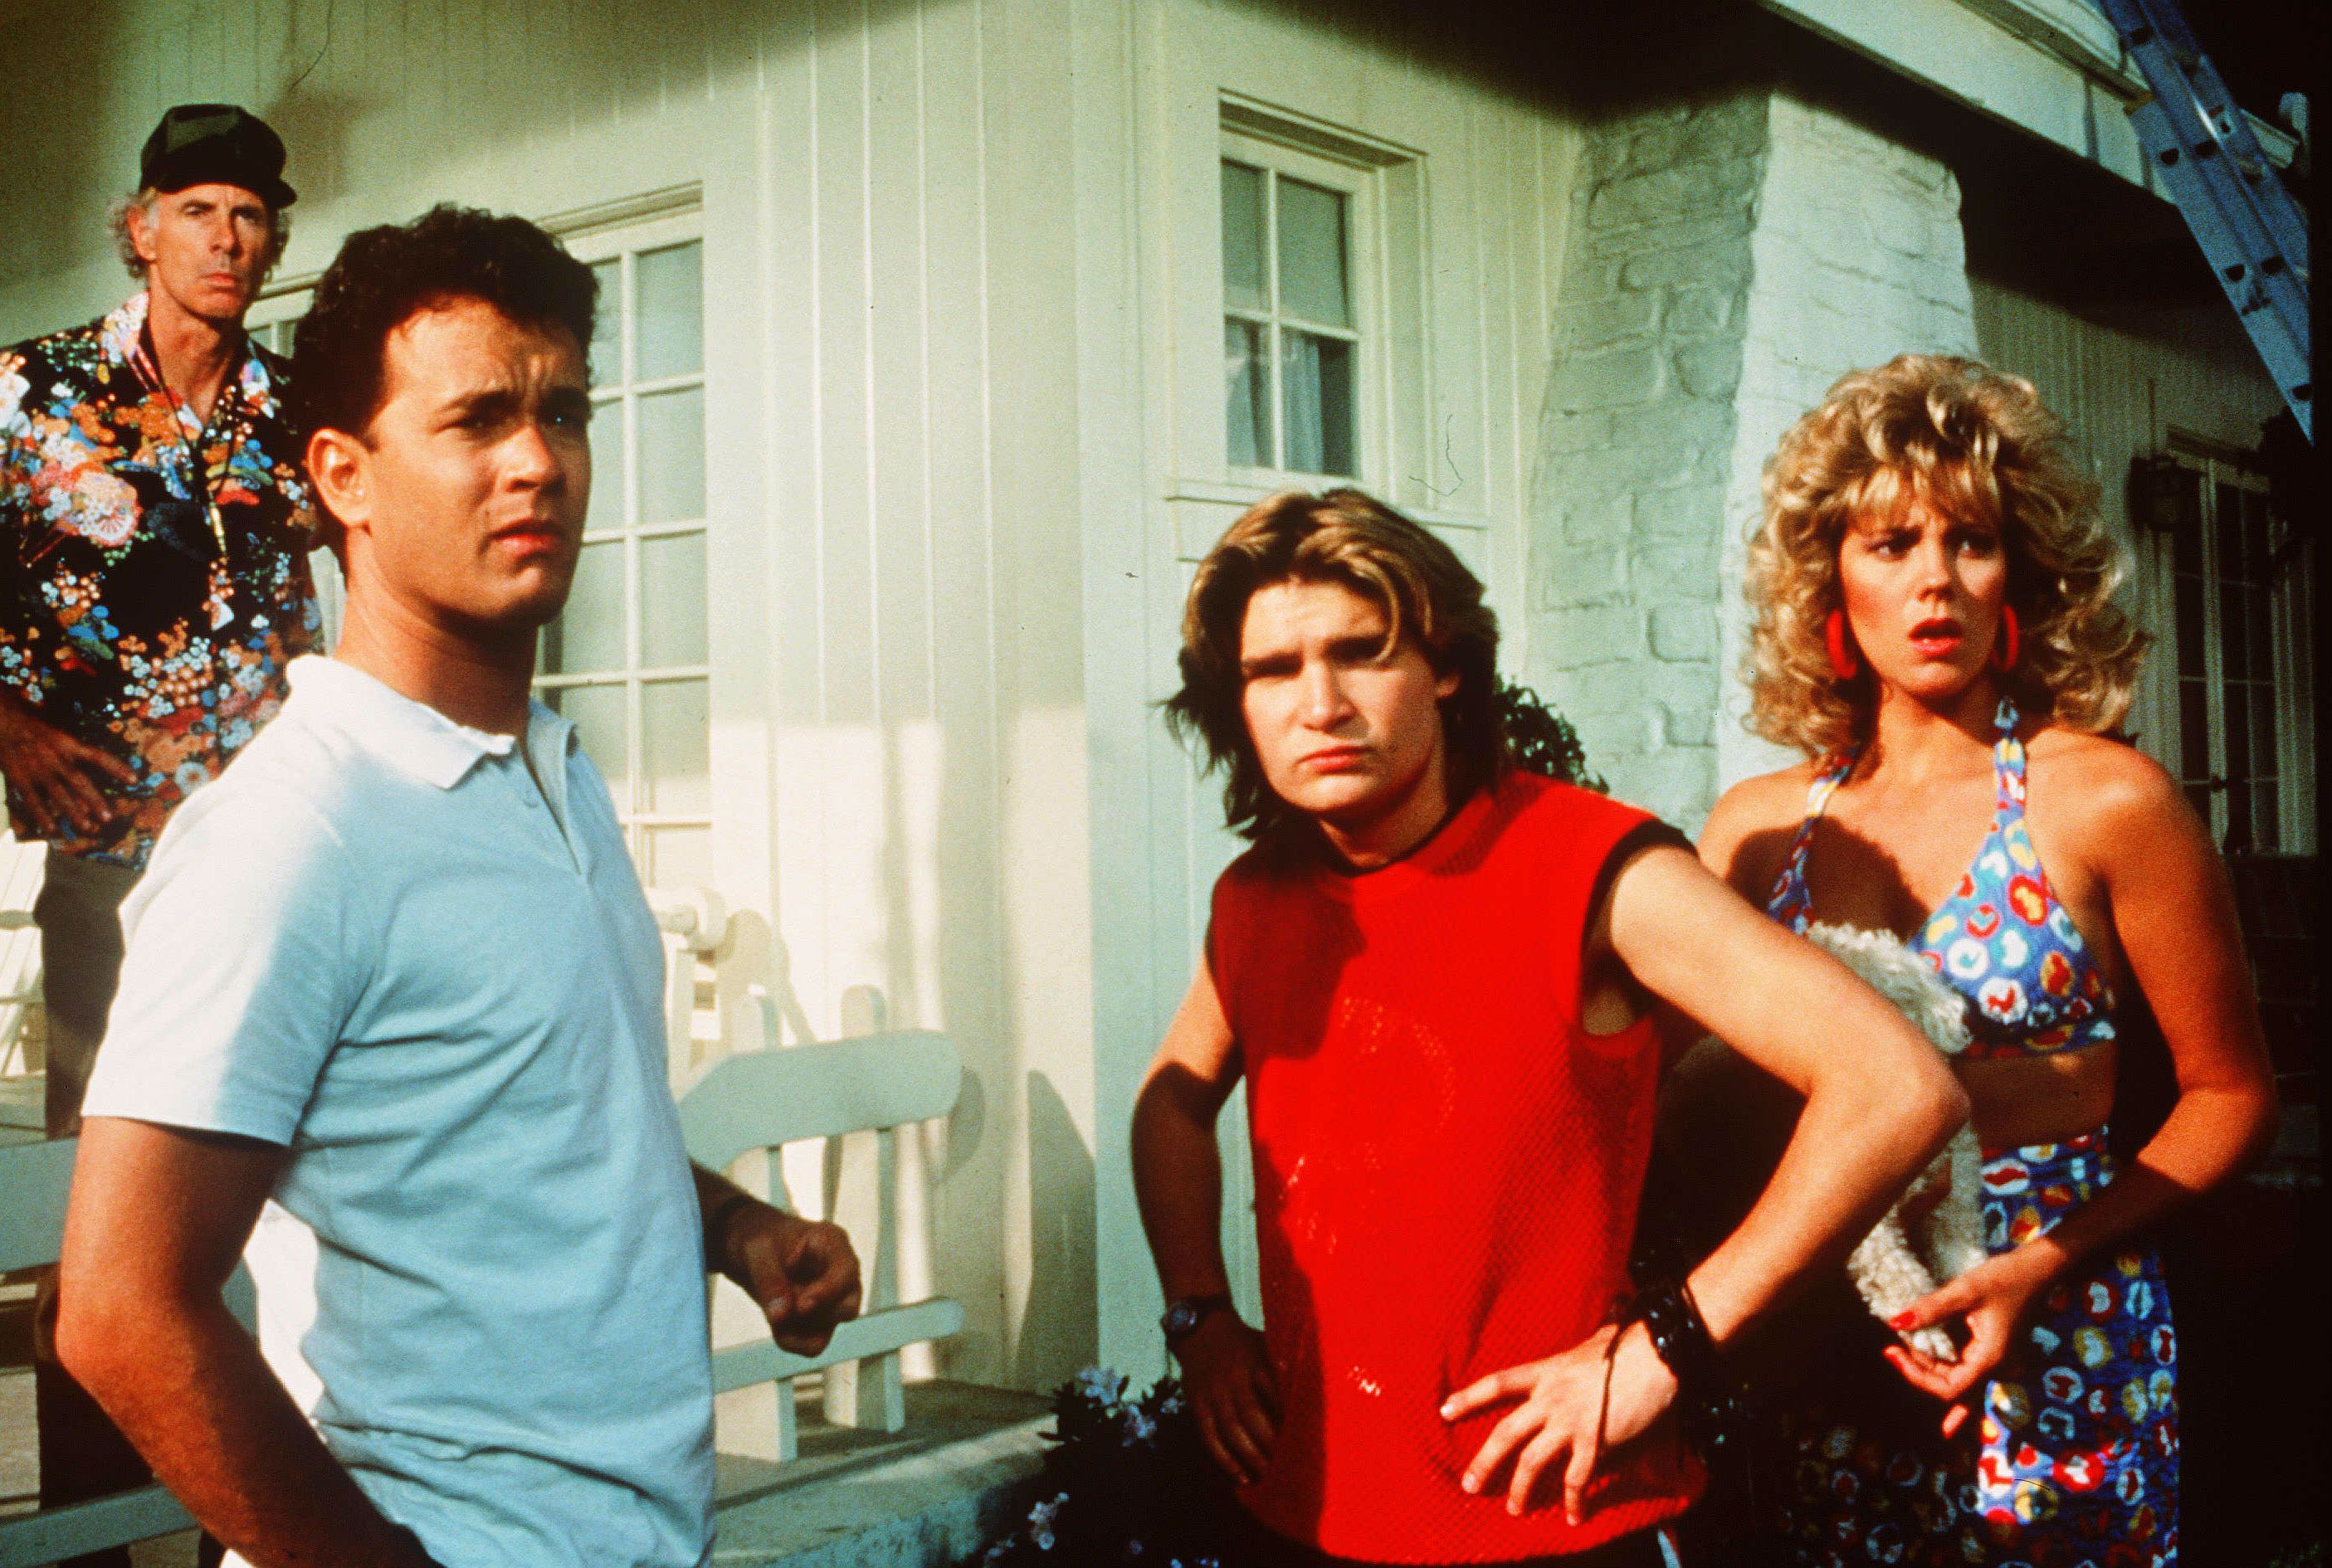 Neighbours (l to r) Bruce Dern, Tom Hanks, Corey Feldman and Wendy Schaal become concerned about the new people moved in in The 'Burbs (1989)